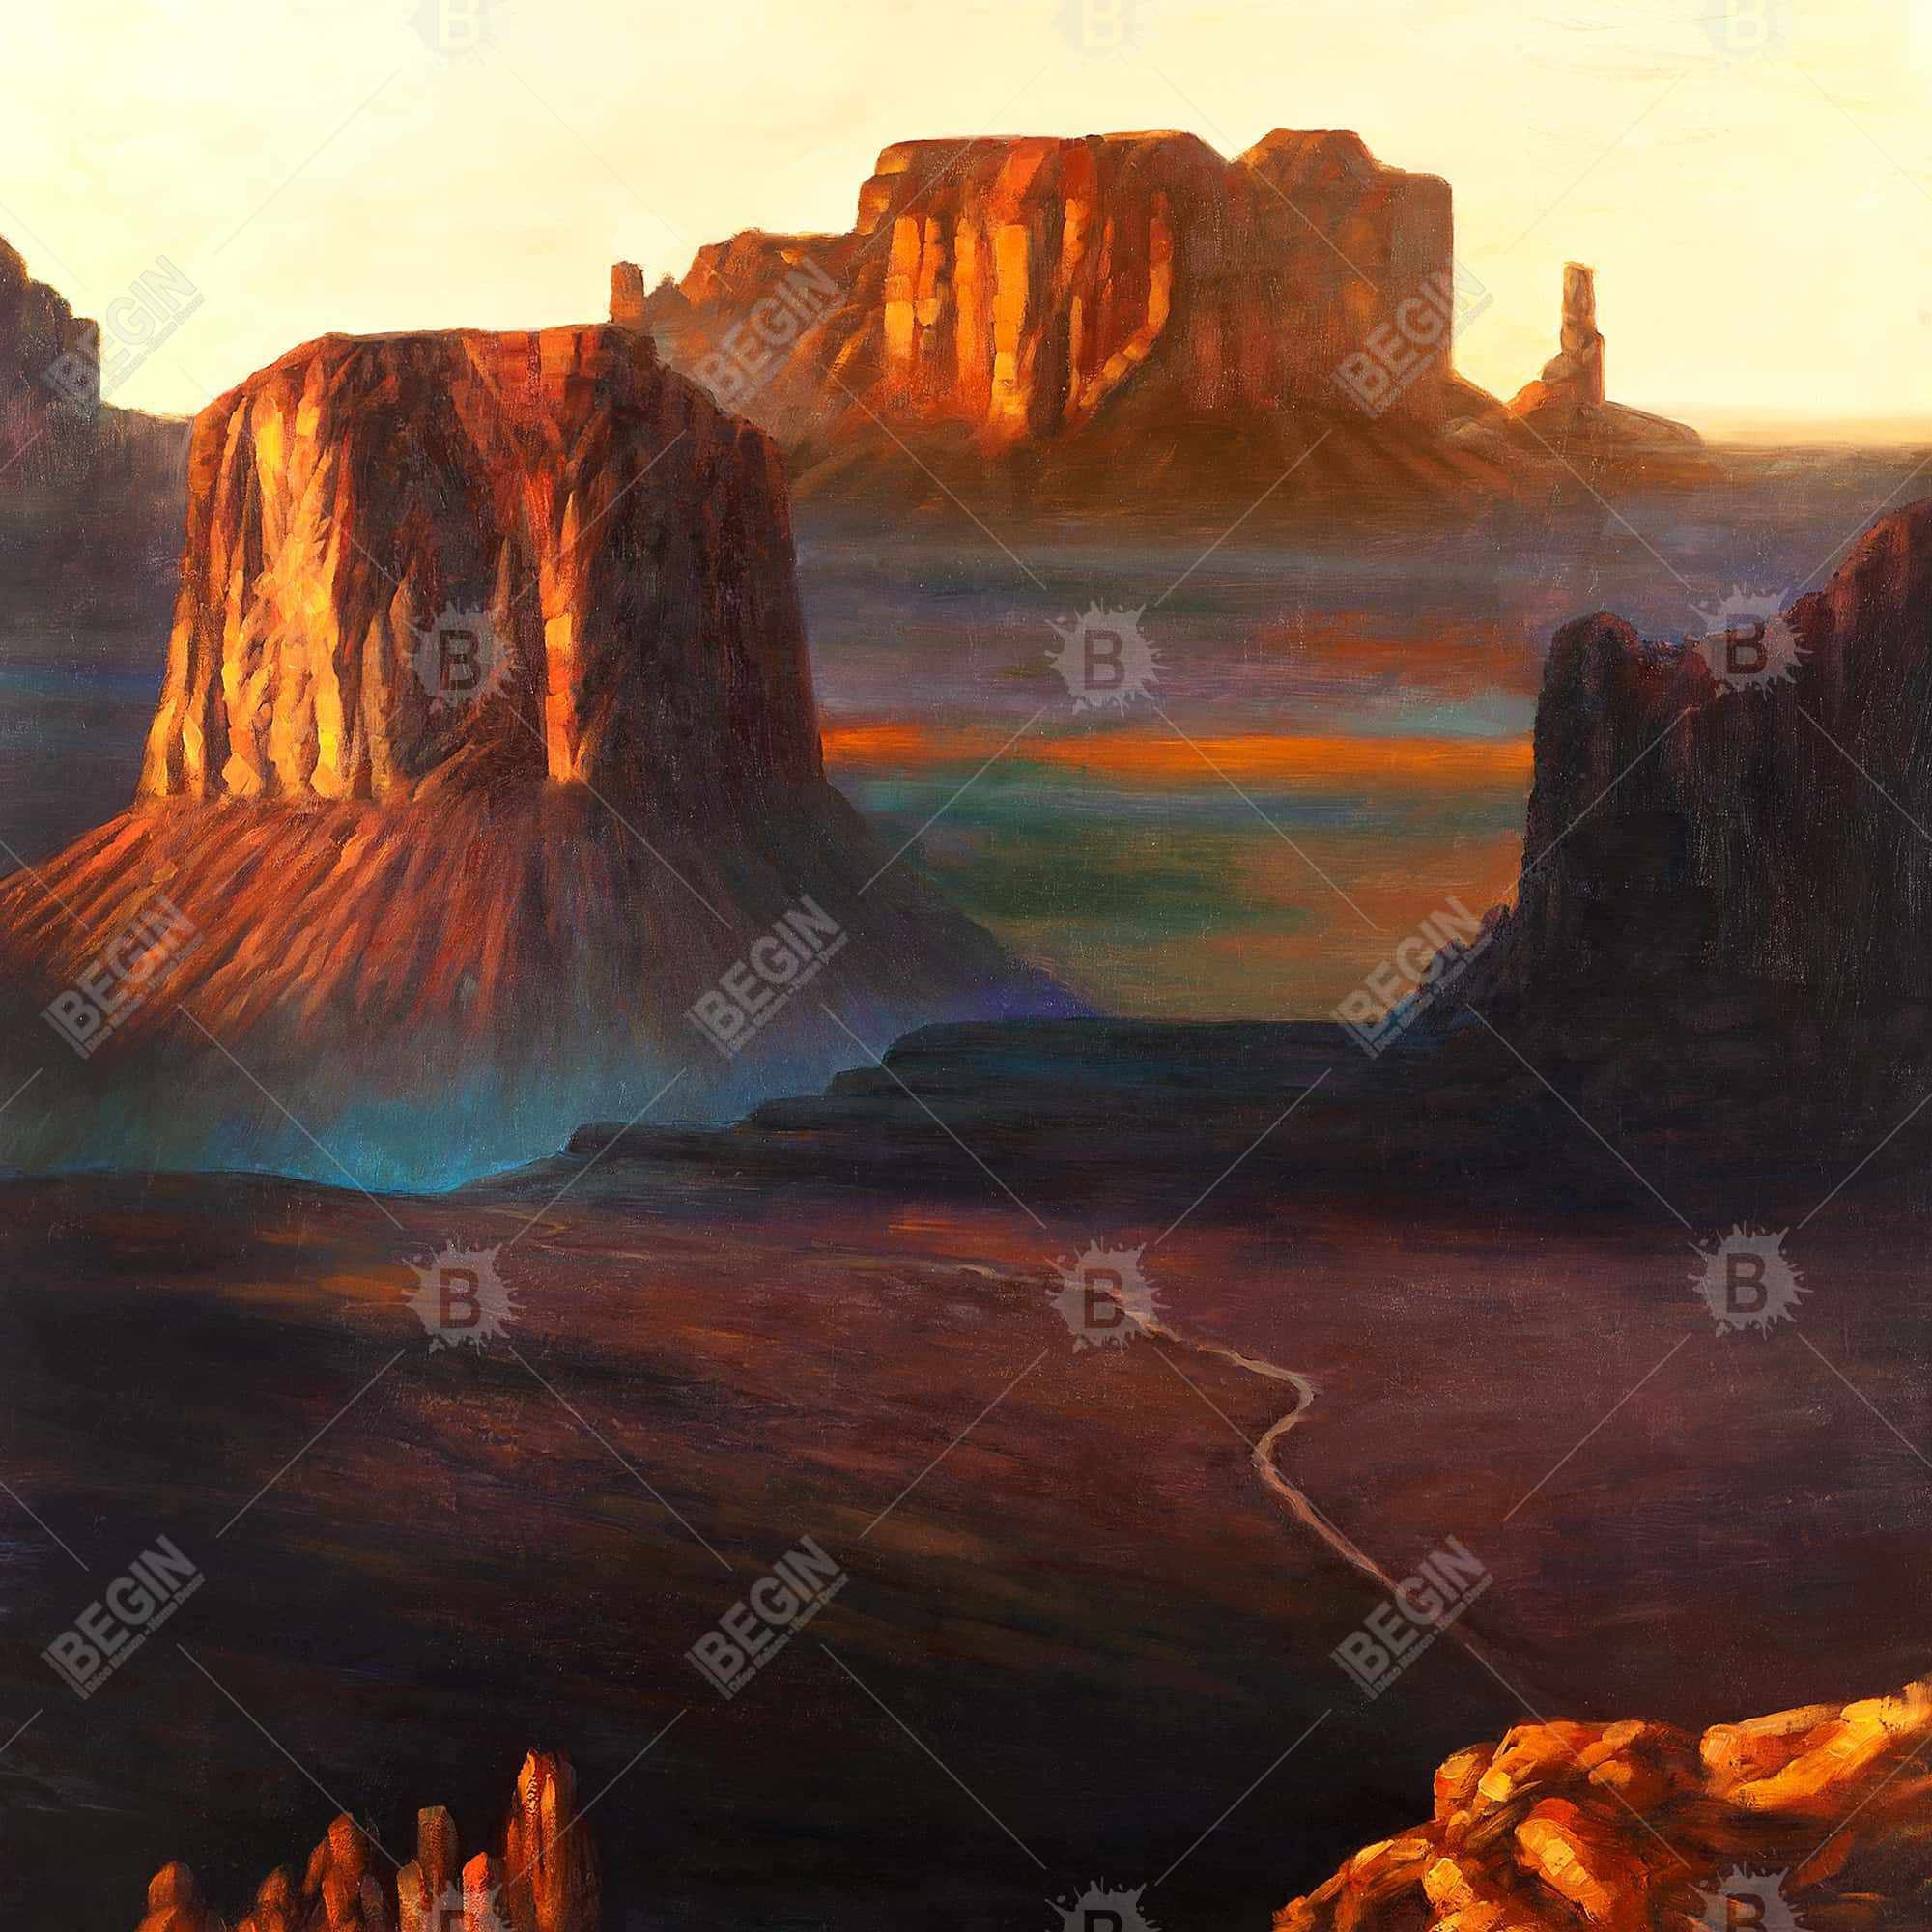 Monument valley tribal park dans l'arizona